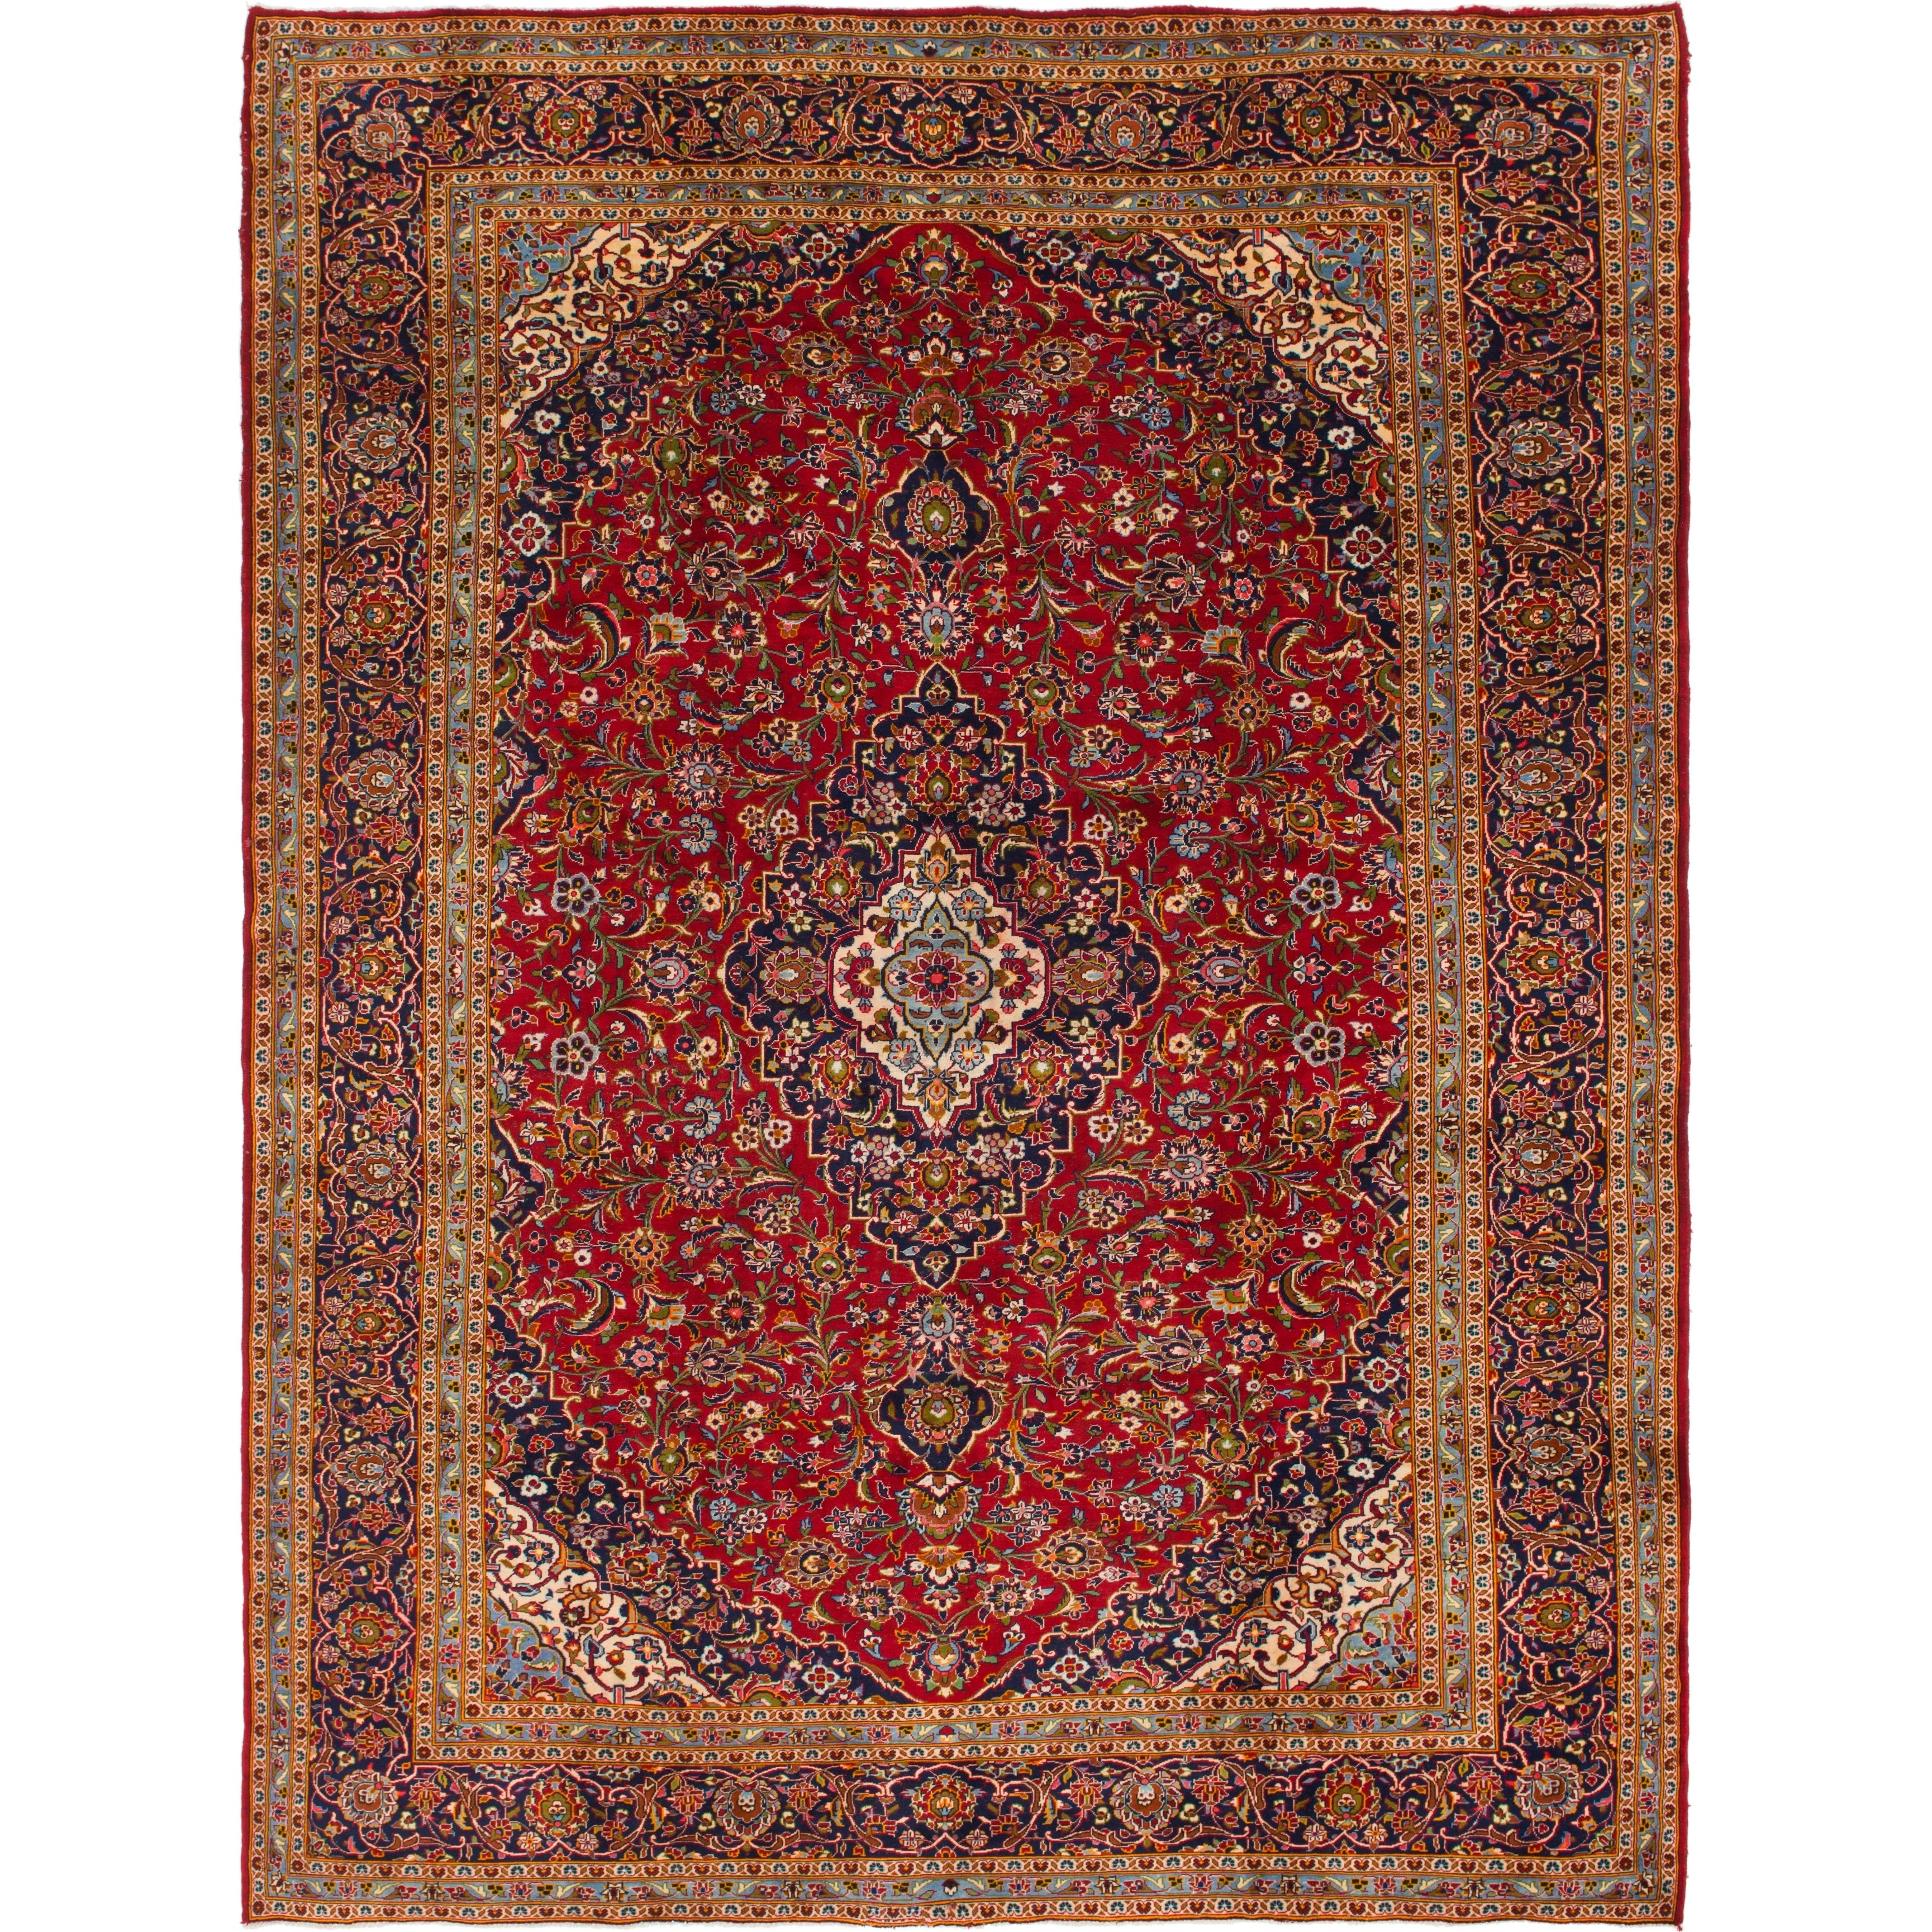 Hand Knotted Kashan Semi Antique Wool Area Rug - 9 10 x 13 2 (Red - 9 10 x 13 2)